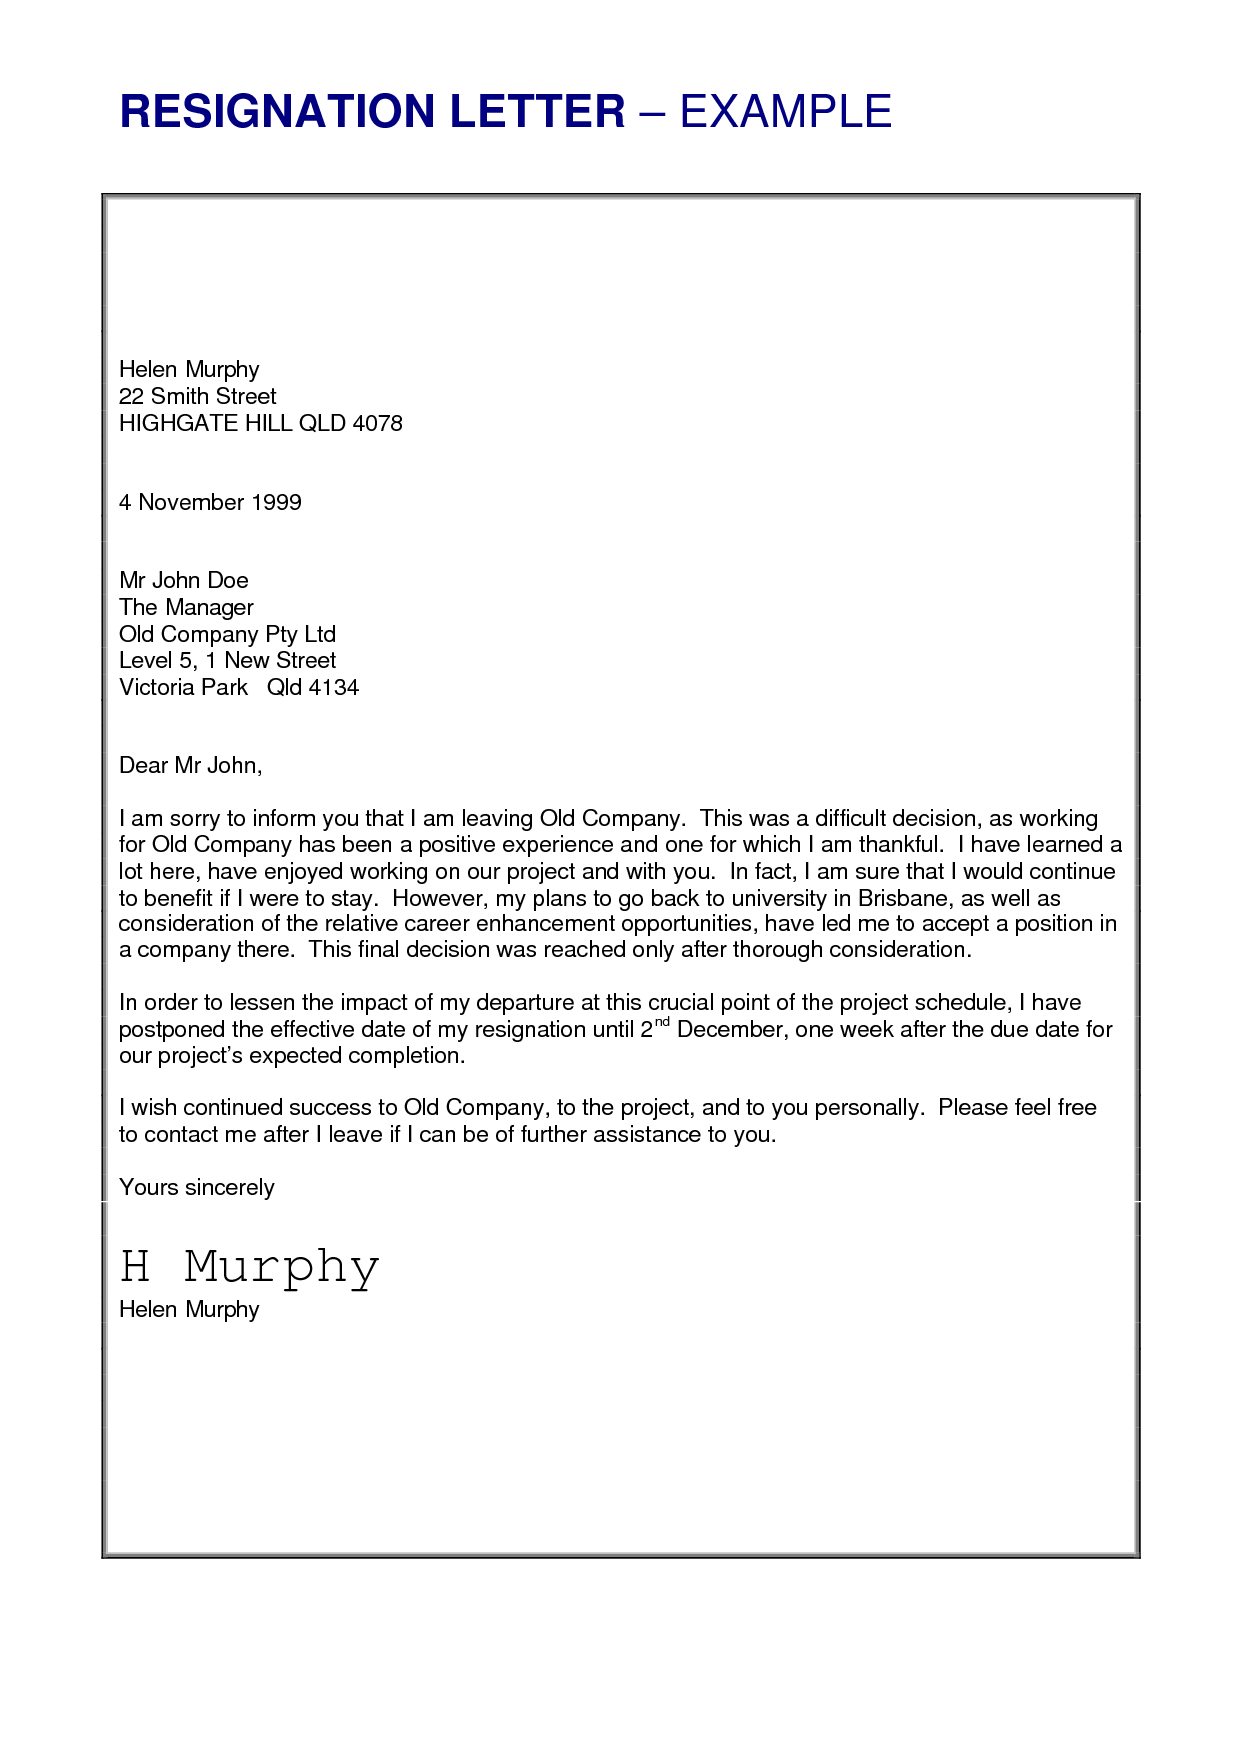 Job Resignation Letter Sample Loganun Blog Best Letter